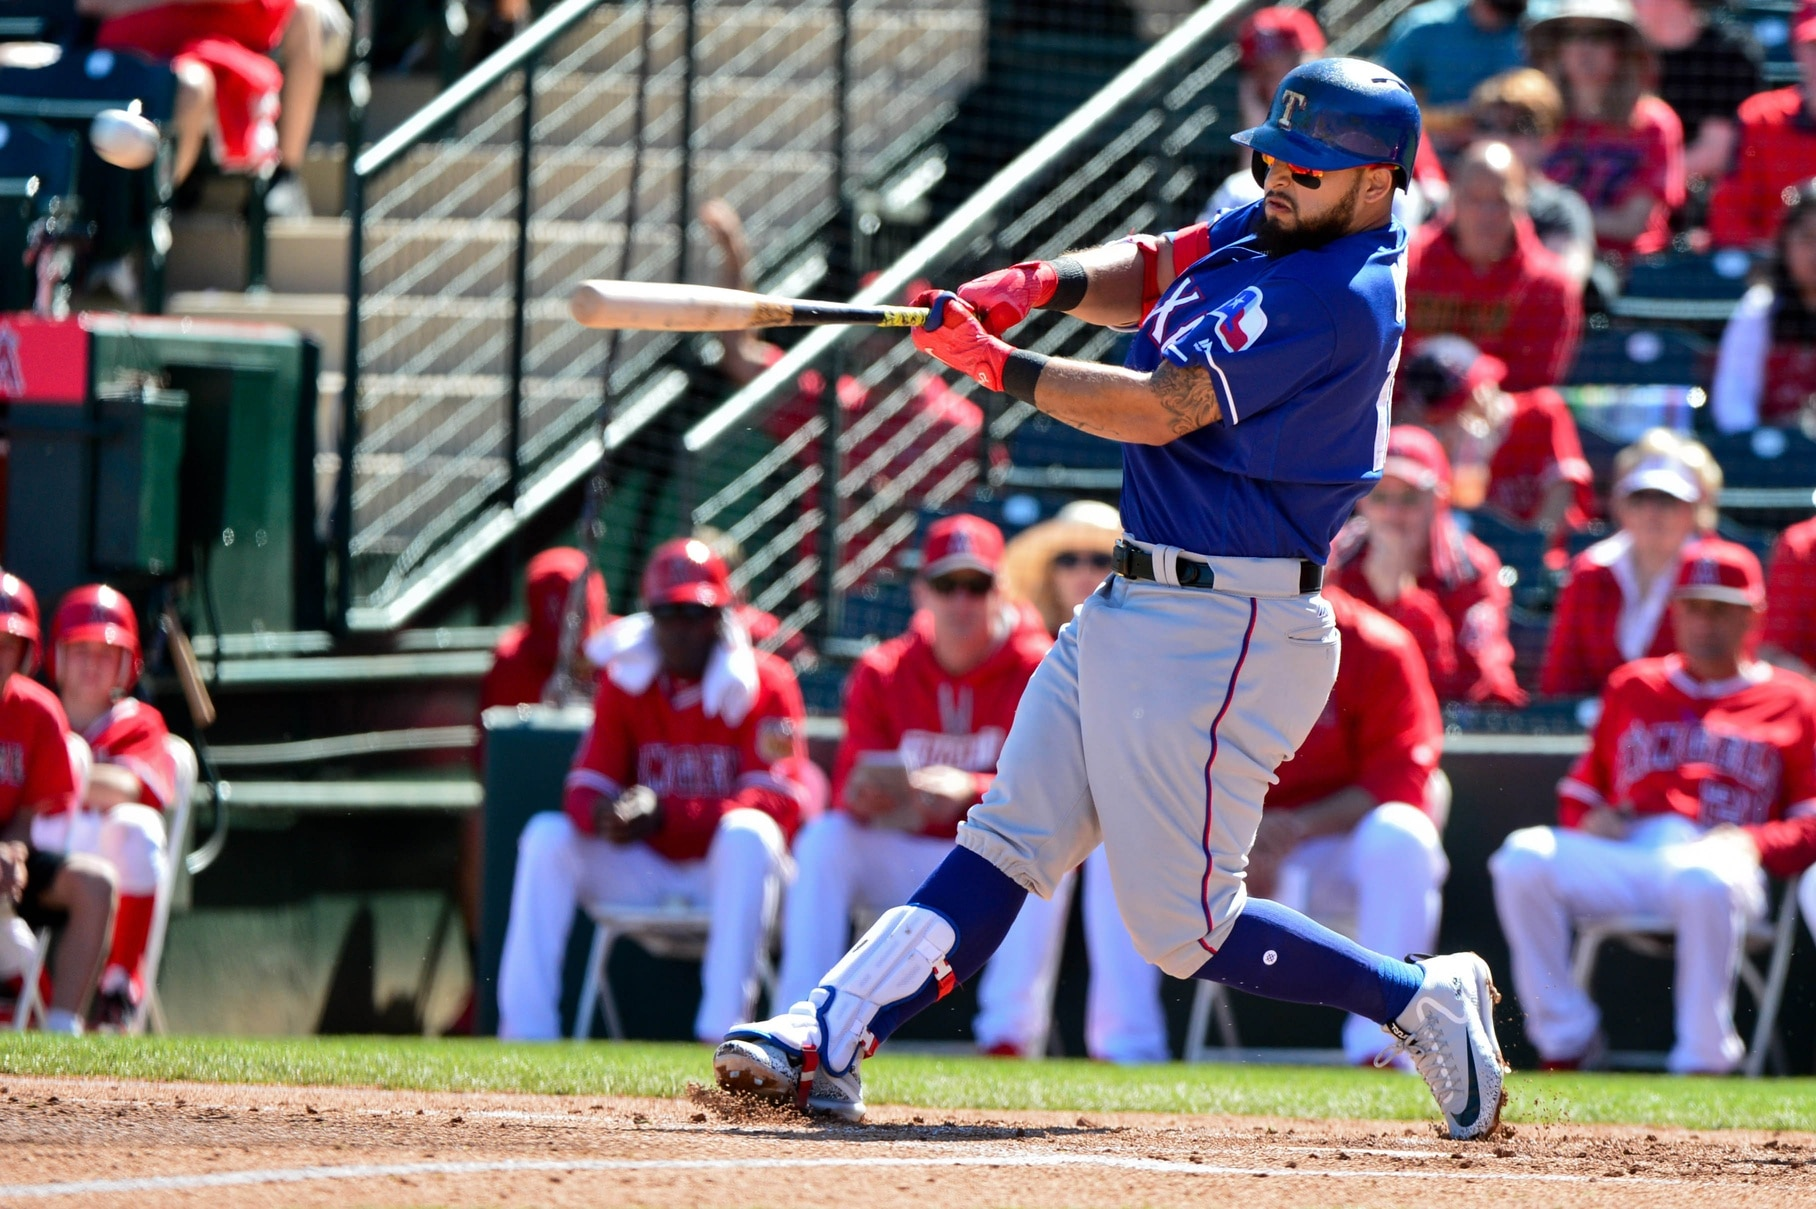 Caption: Mar 23, 2017; Surprise, AZ, USA; Texas Rangers second baseman Rougned Odor (12) runs to first with his bat as he flew out during the fourth inning against the Los Angeles Dodgers at Surprise Stadium. Mandatory Credit: Jake Roth-USA TODAY Sports